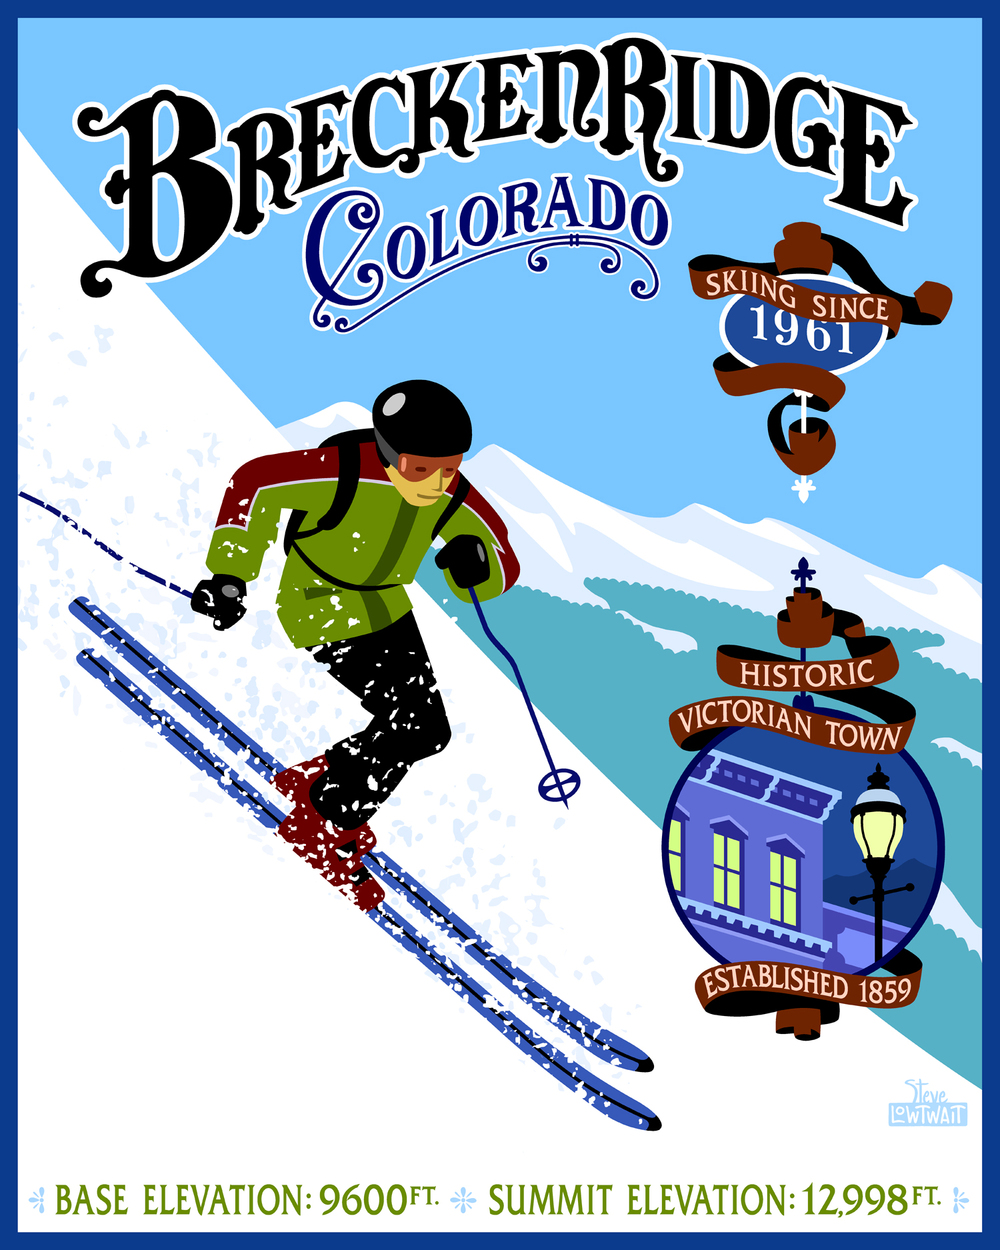 Breckenridge_Colorado.jpg